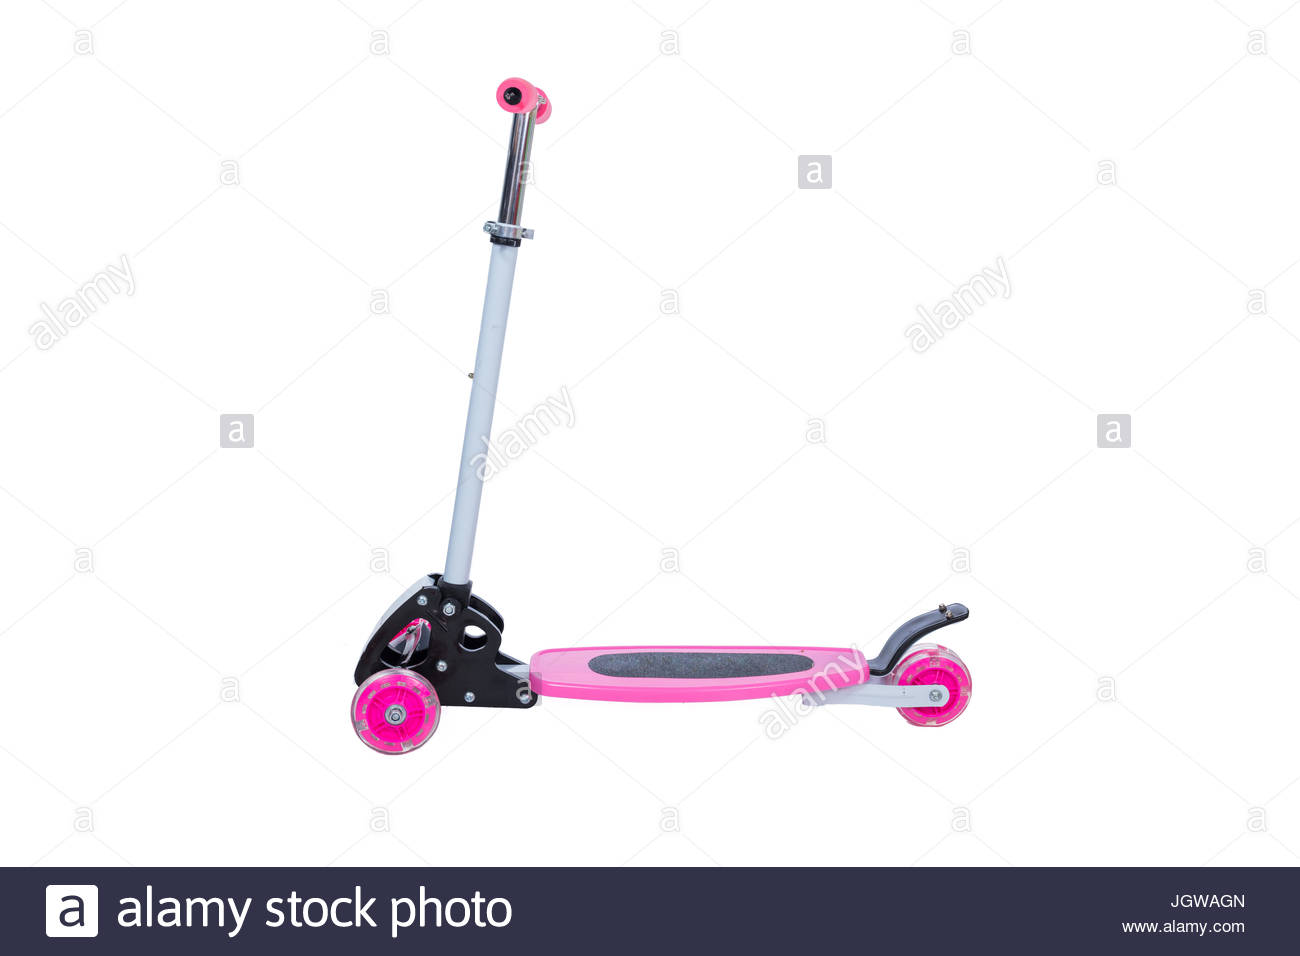 Scooter White Background Stock Photos Scooter White Background 1300x956